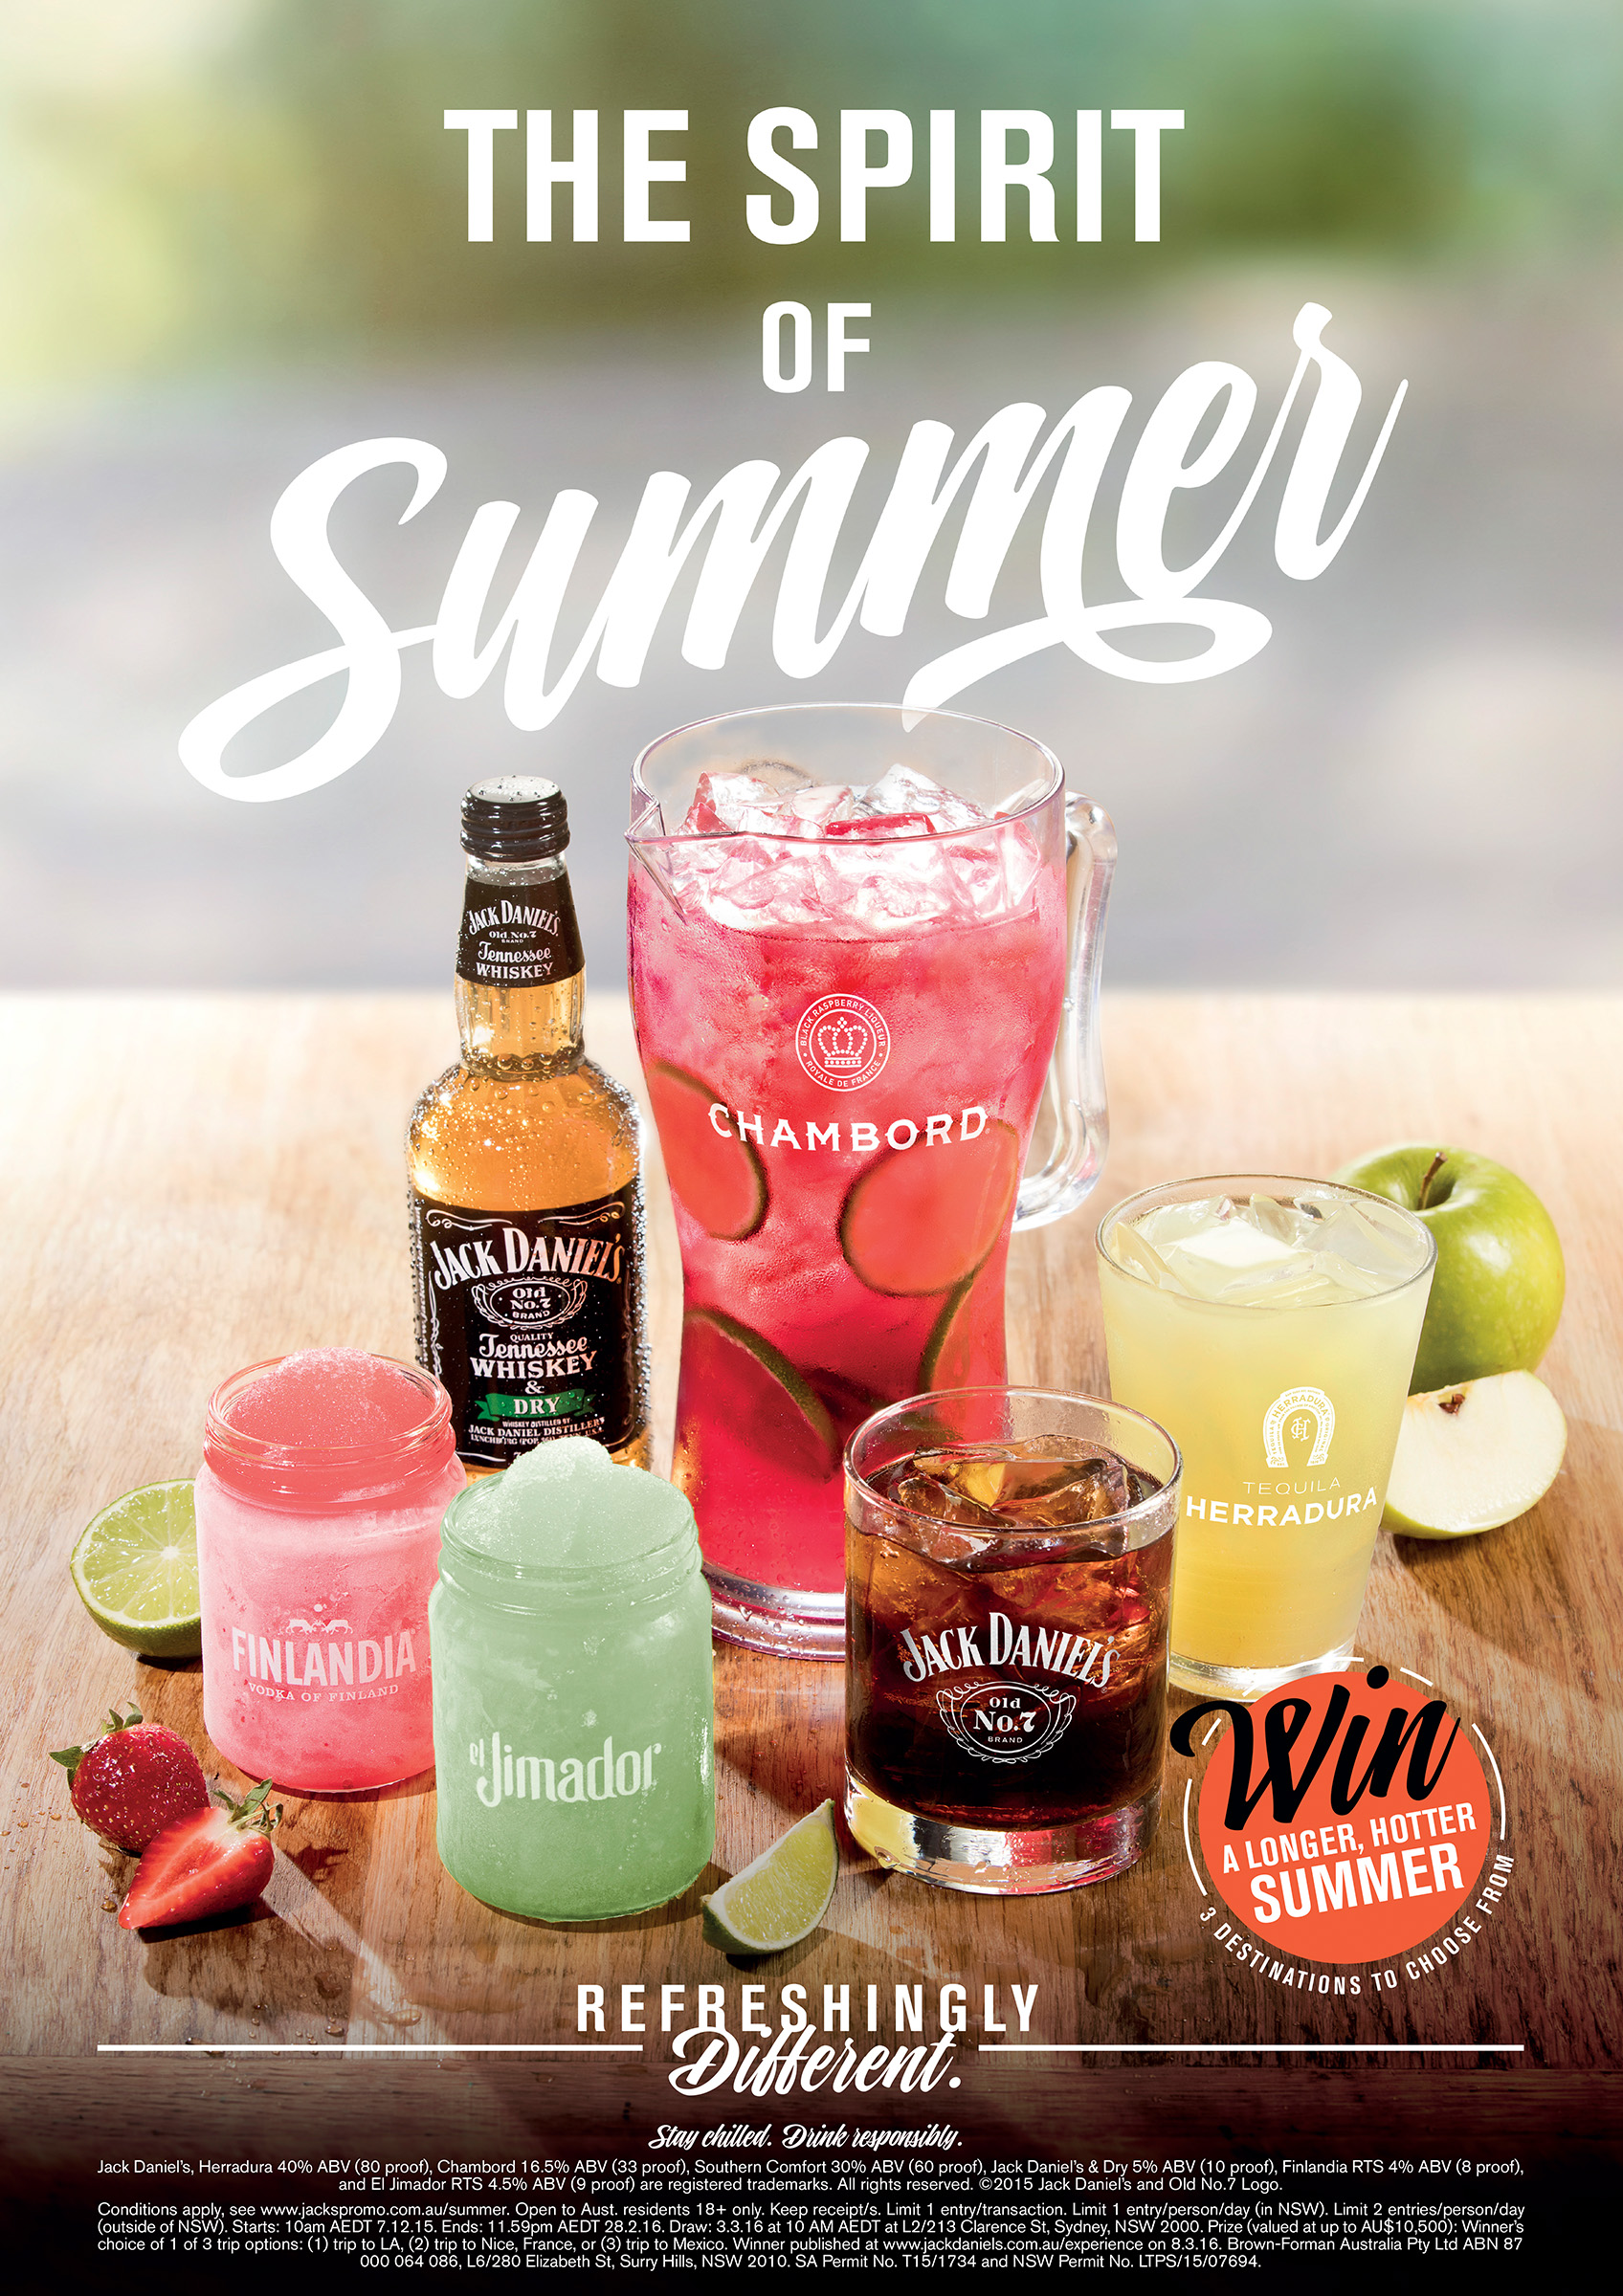 Advertising product photography of Jack Daniels, JD, Finlandia, el Jimador, Chambord Tennessee Whiskey refreshing drinks on a table